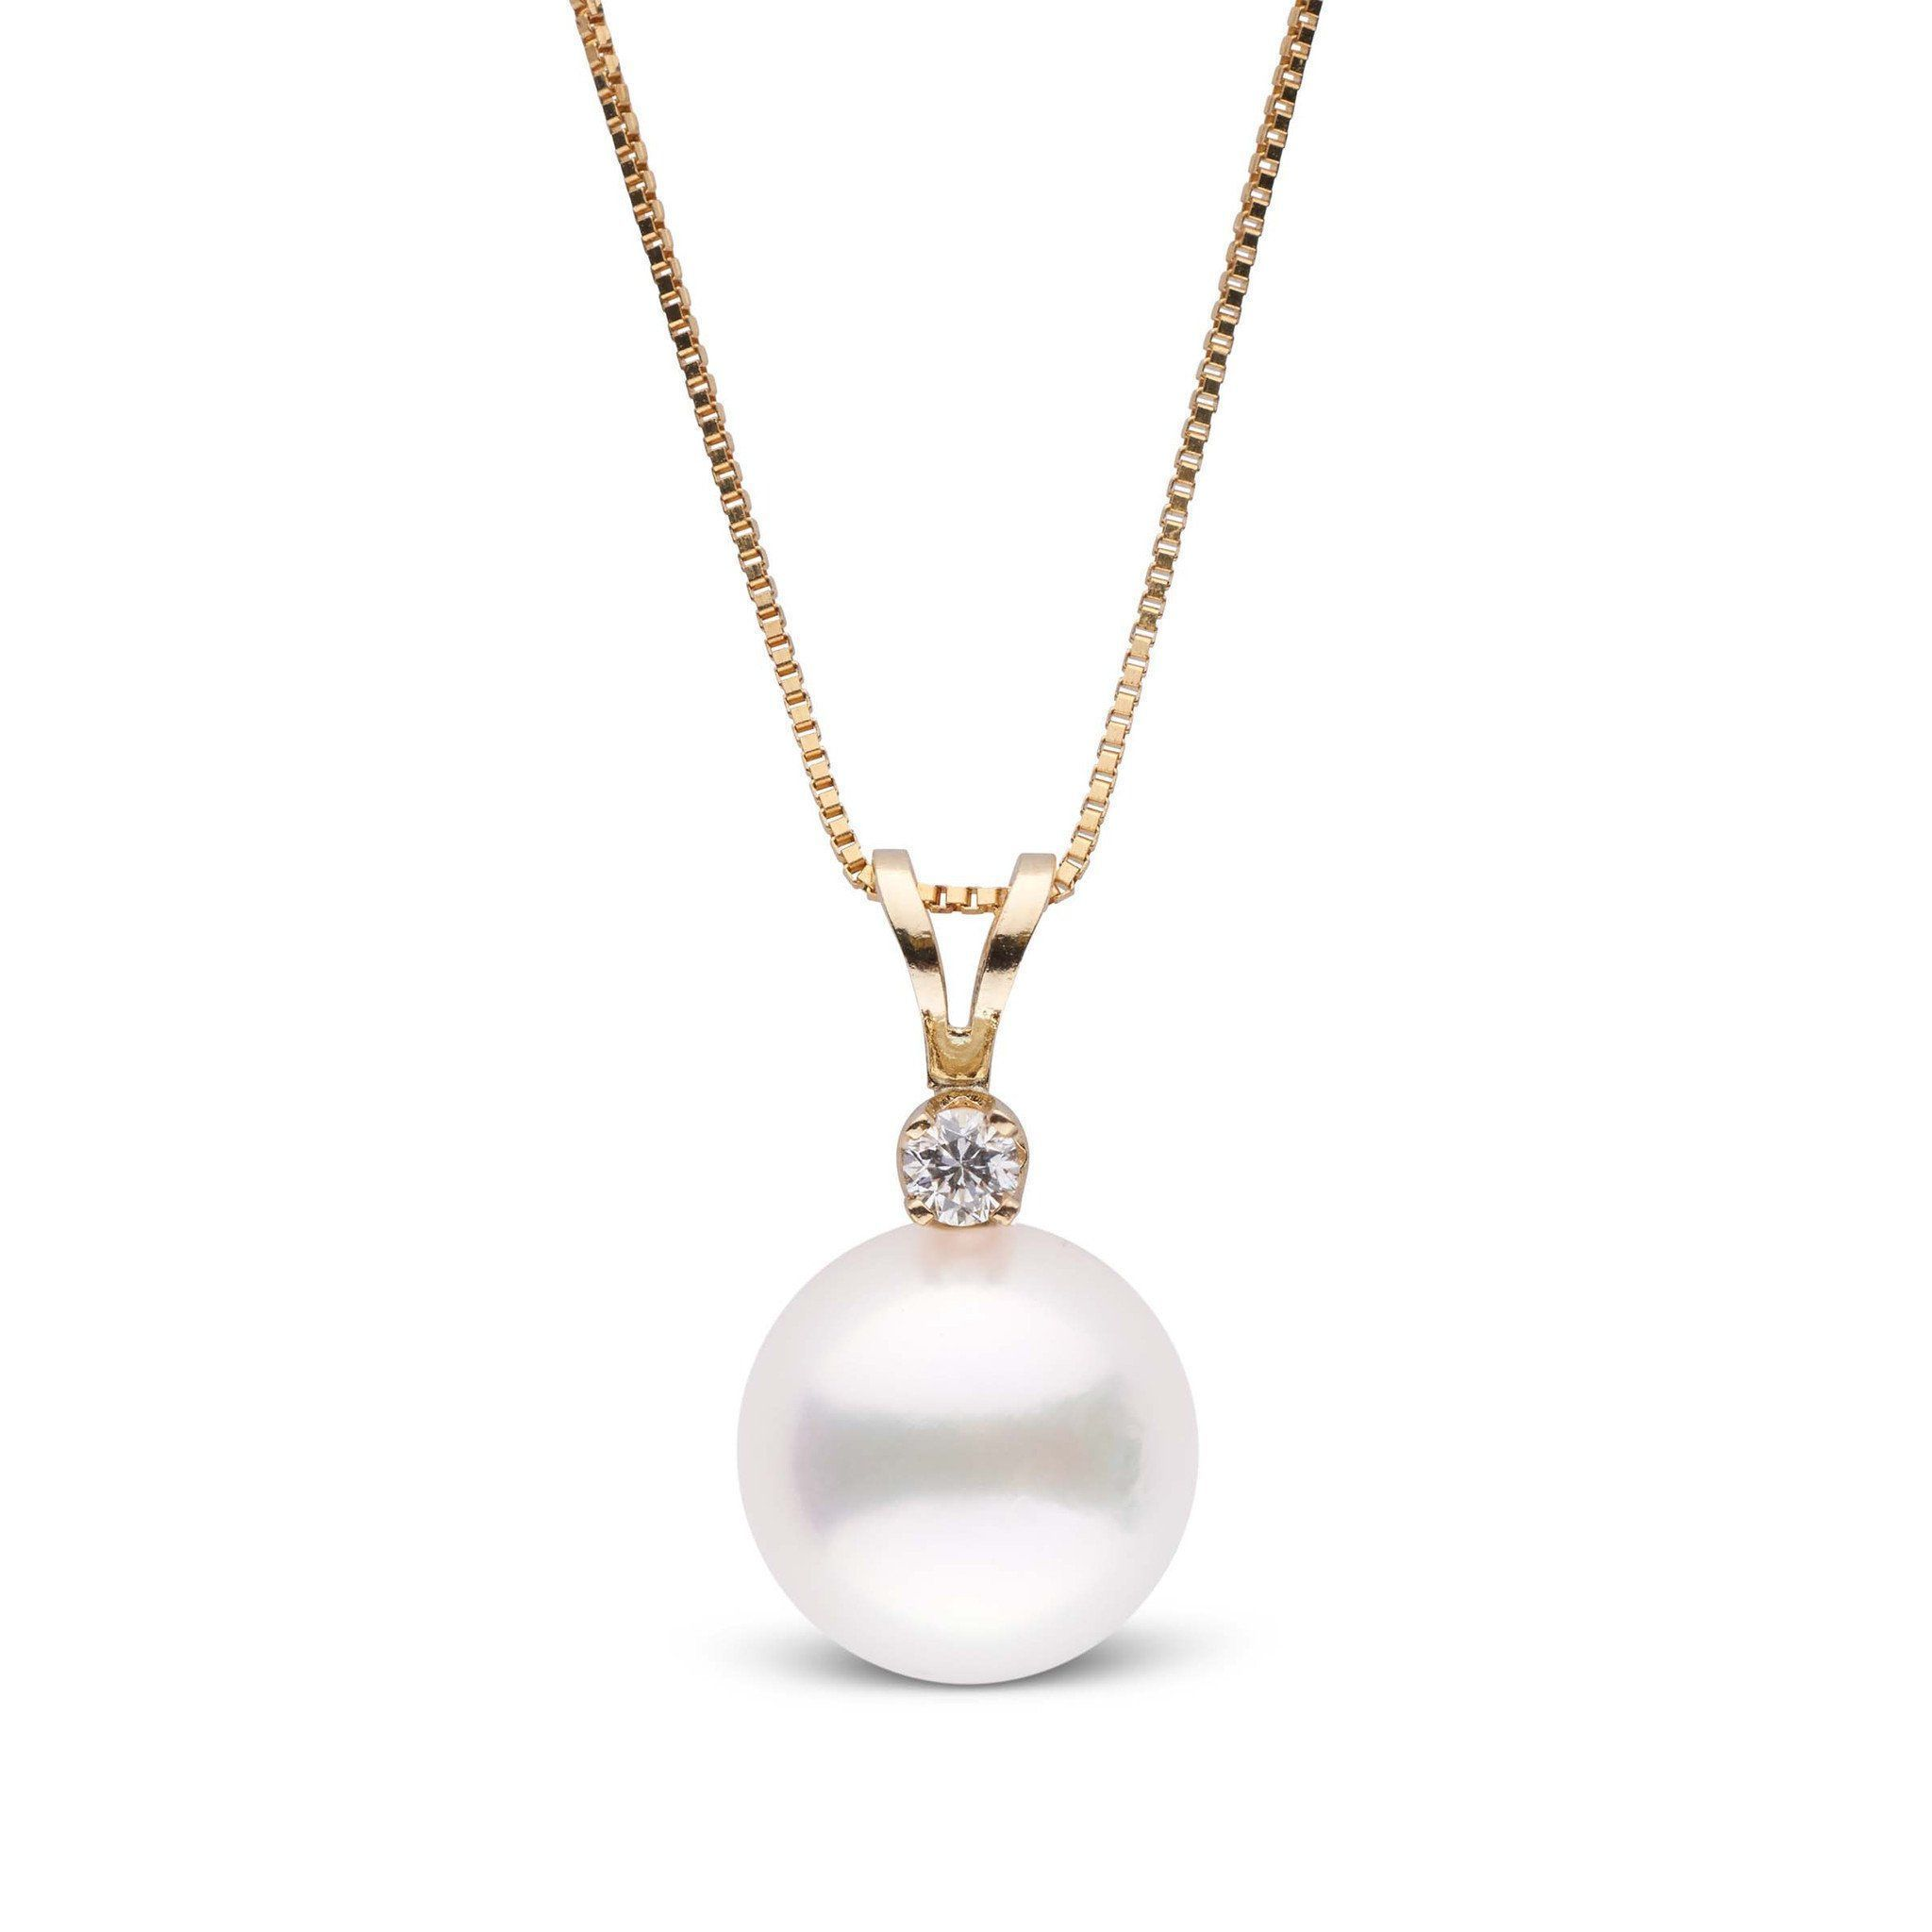 Harmony Collection 9.0-9.5 mm AAA Akoya Pearl Pendant